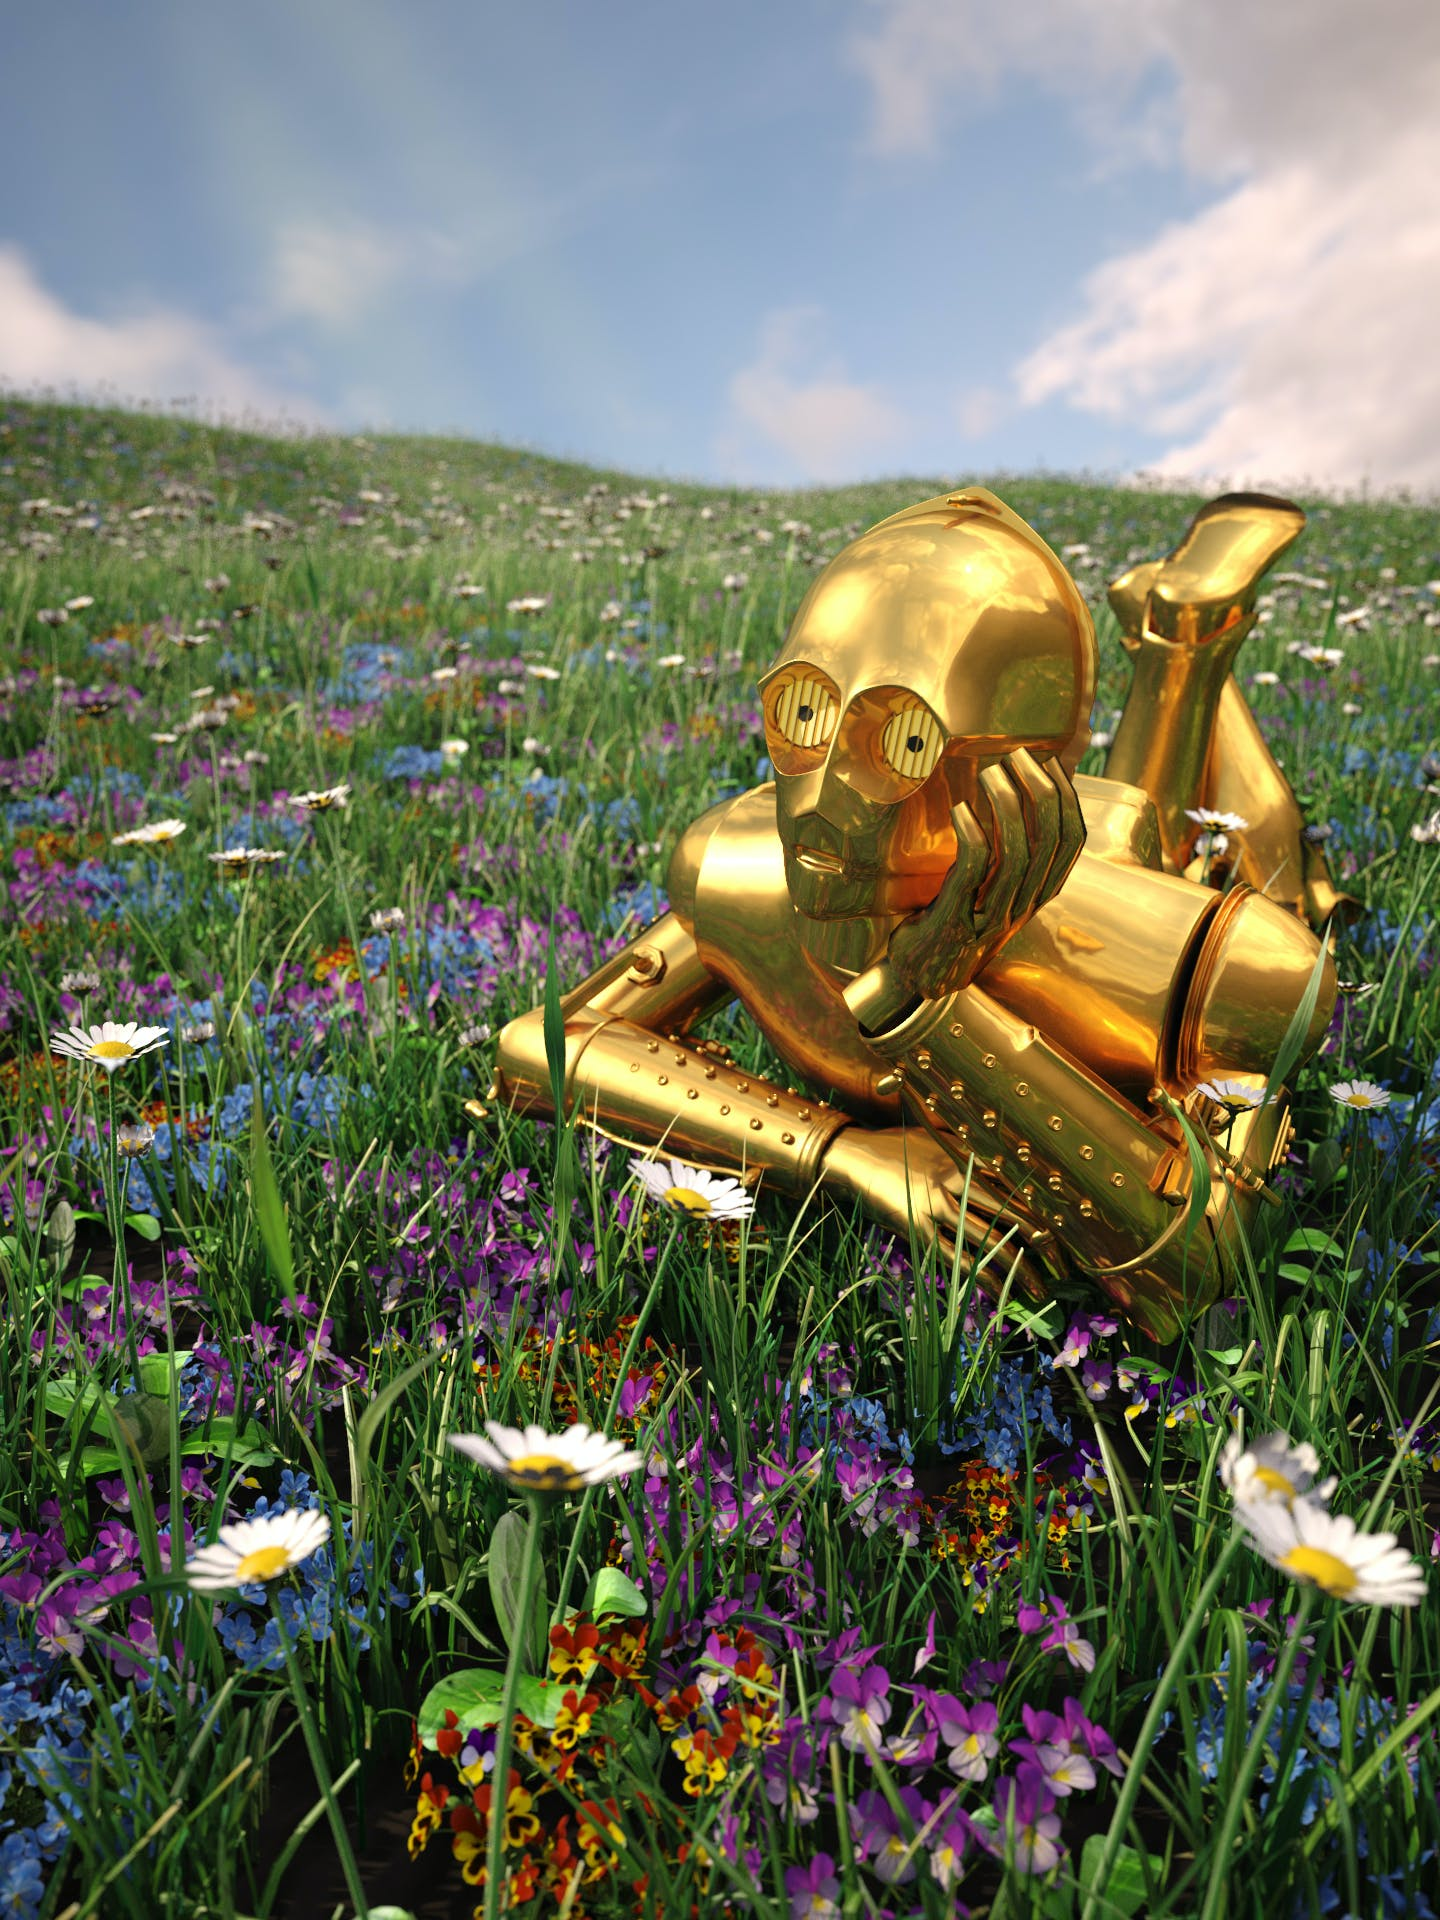 C3PO just wants adventure in the great, wide, somewhere.